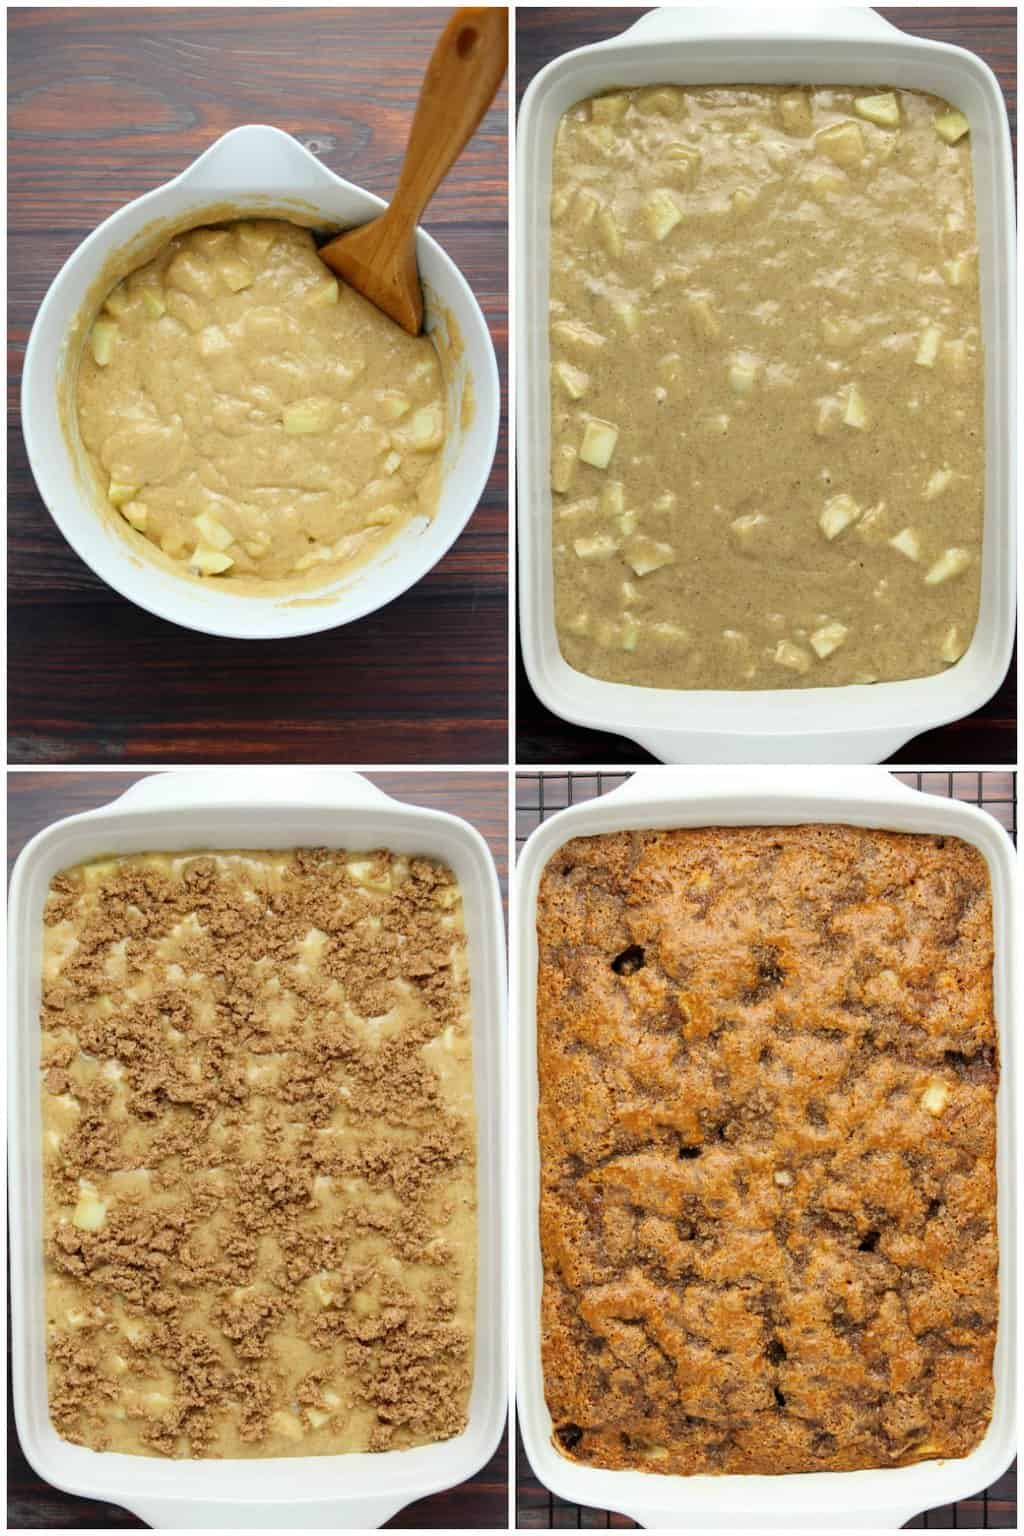 Step by step process photo collage of making vegan apple cake.